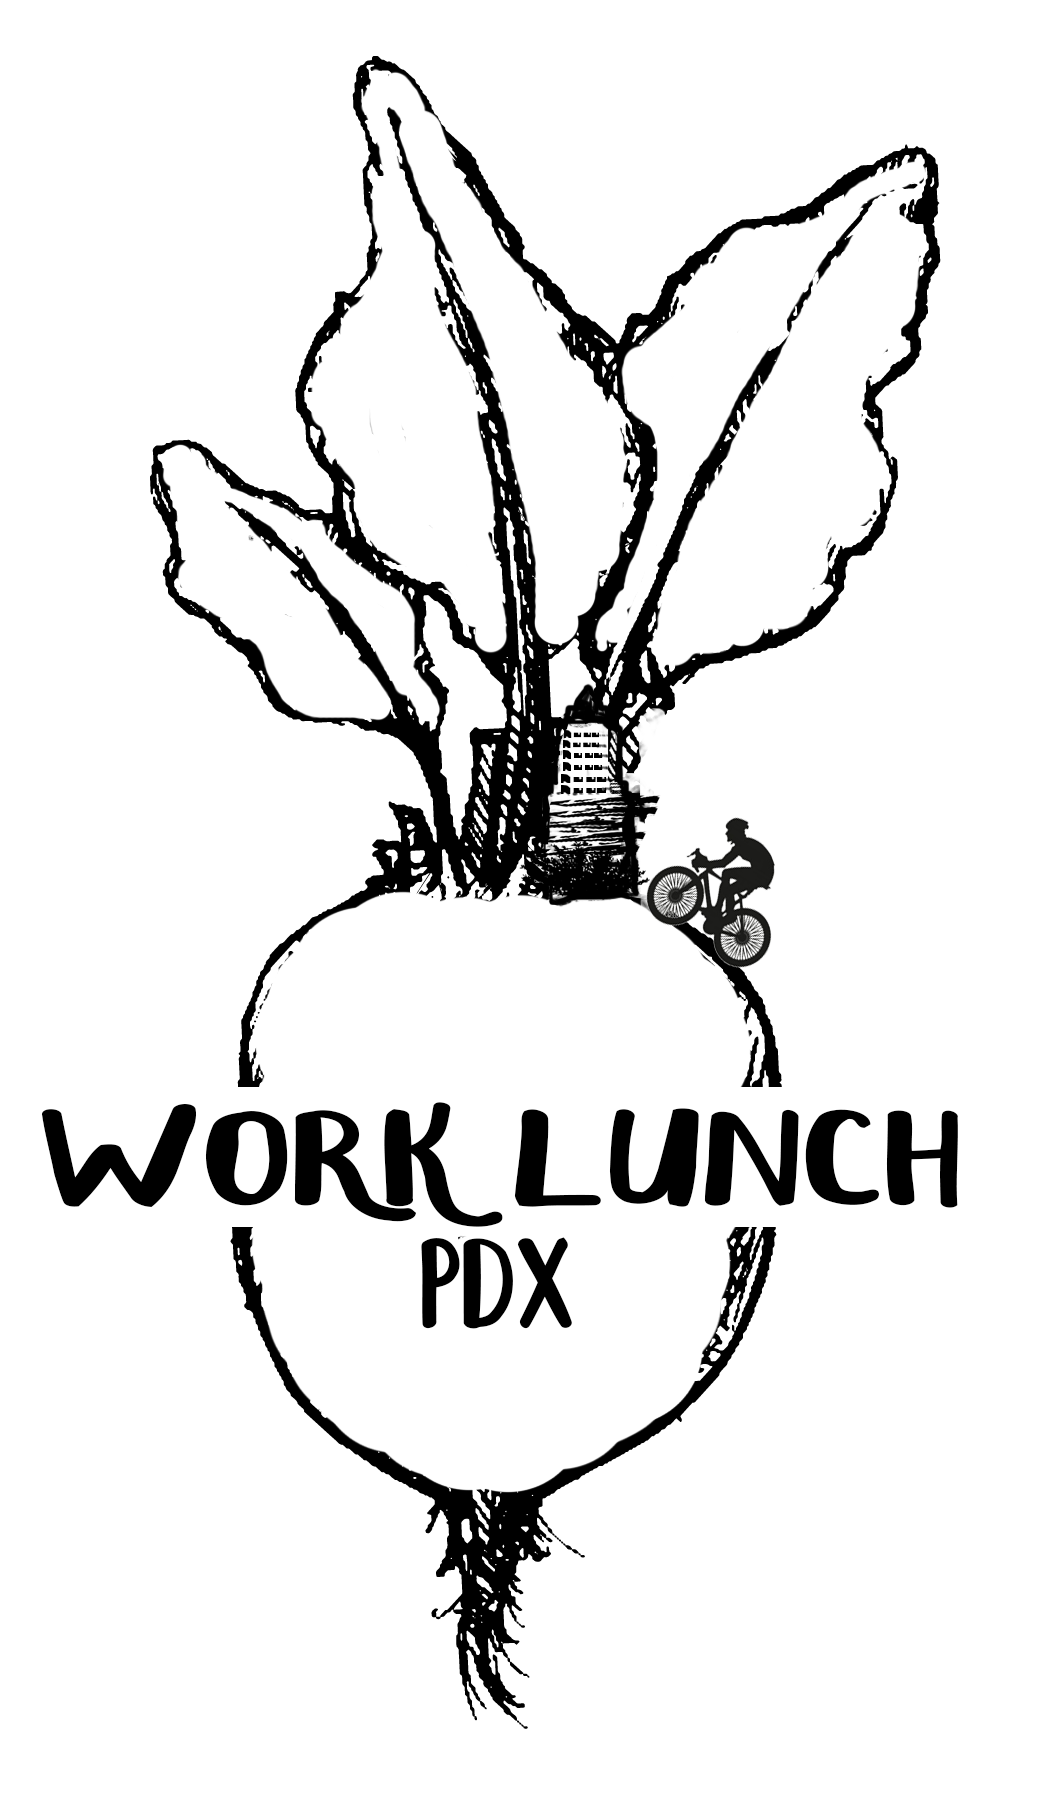 Work Lunch PDX